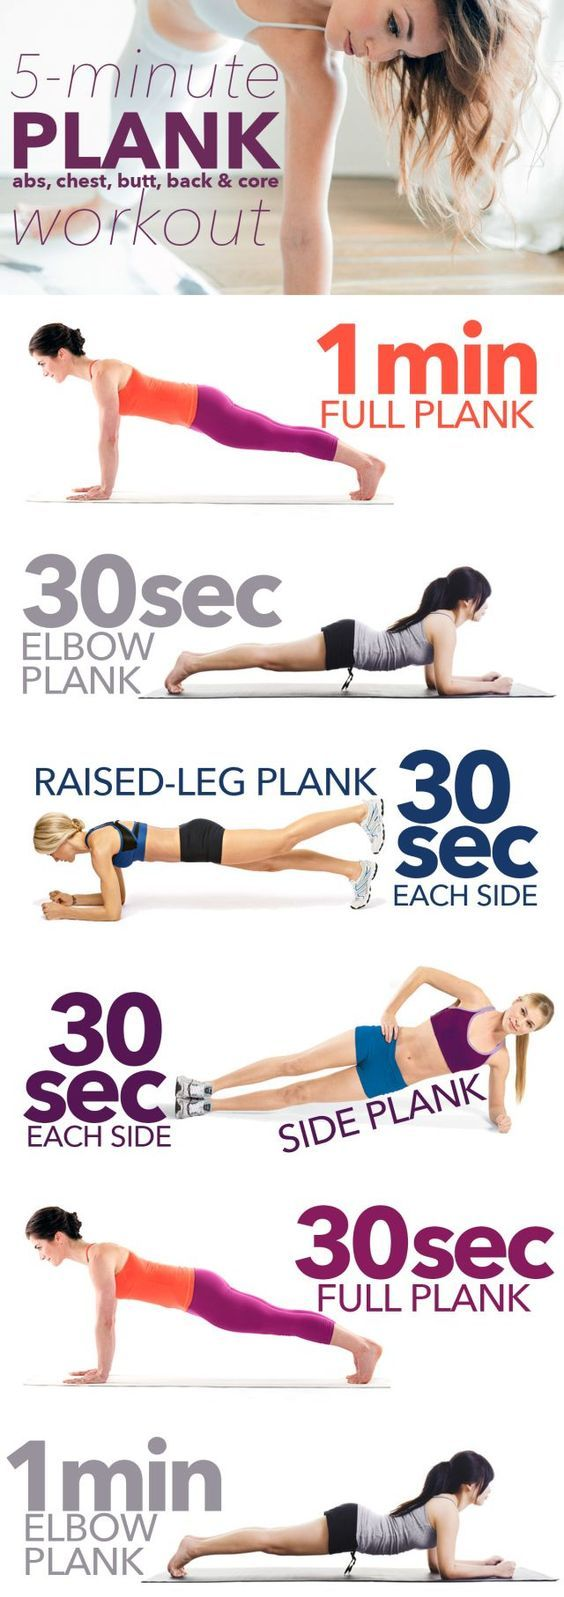 Get flat abs with these quick and easy exercises!